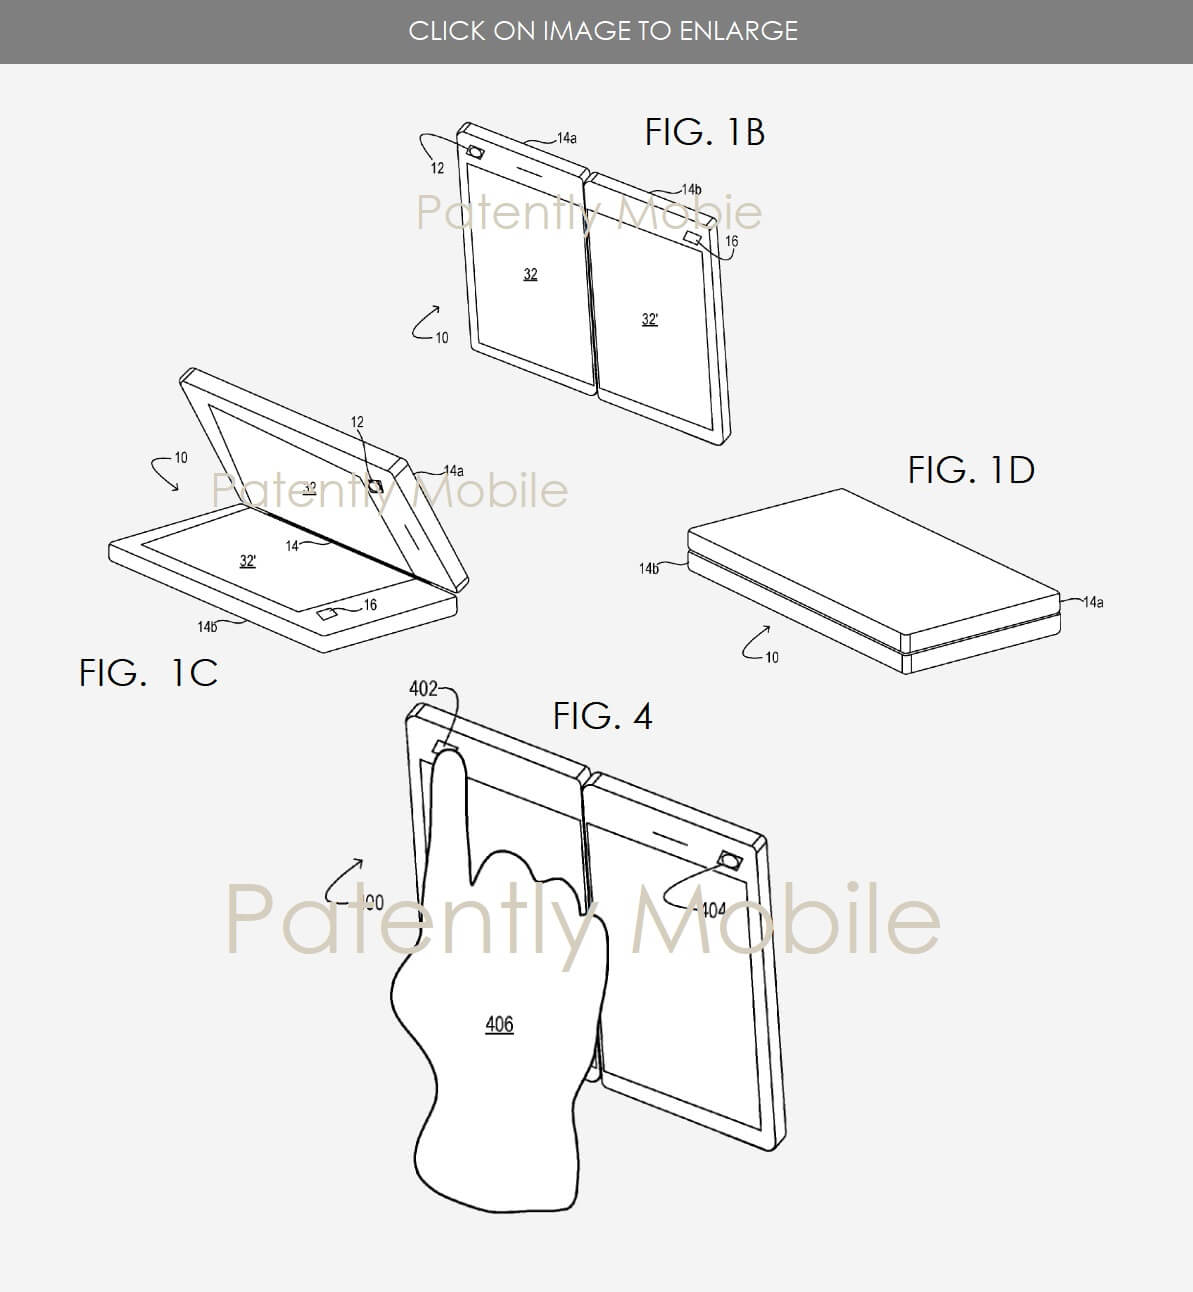 Microsoft's foldable display patent